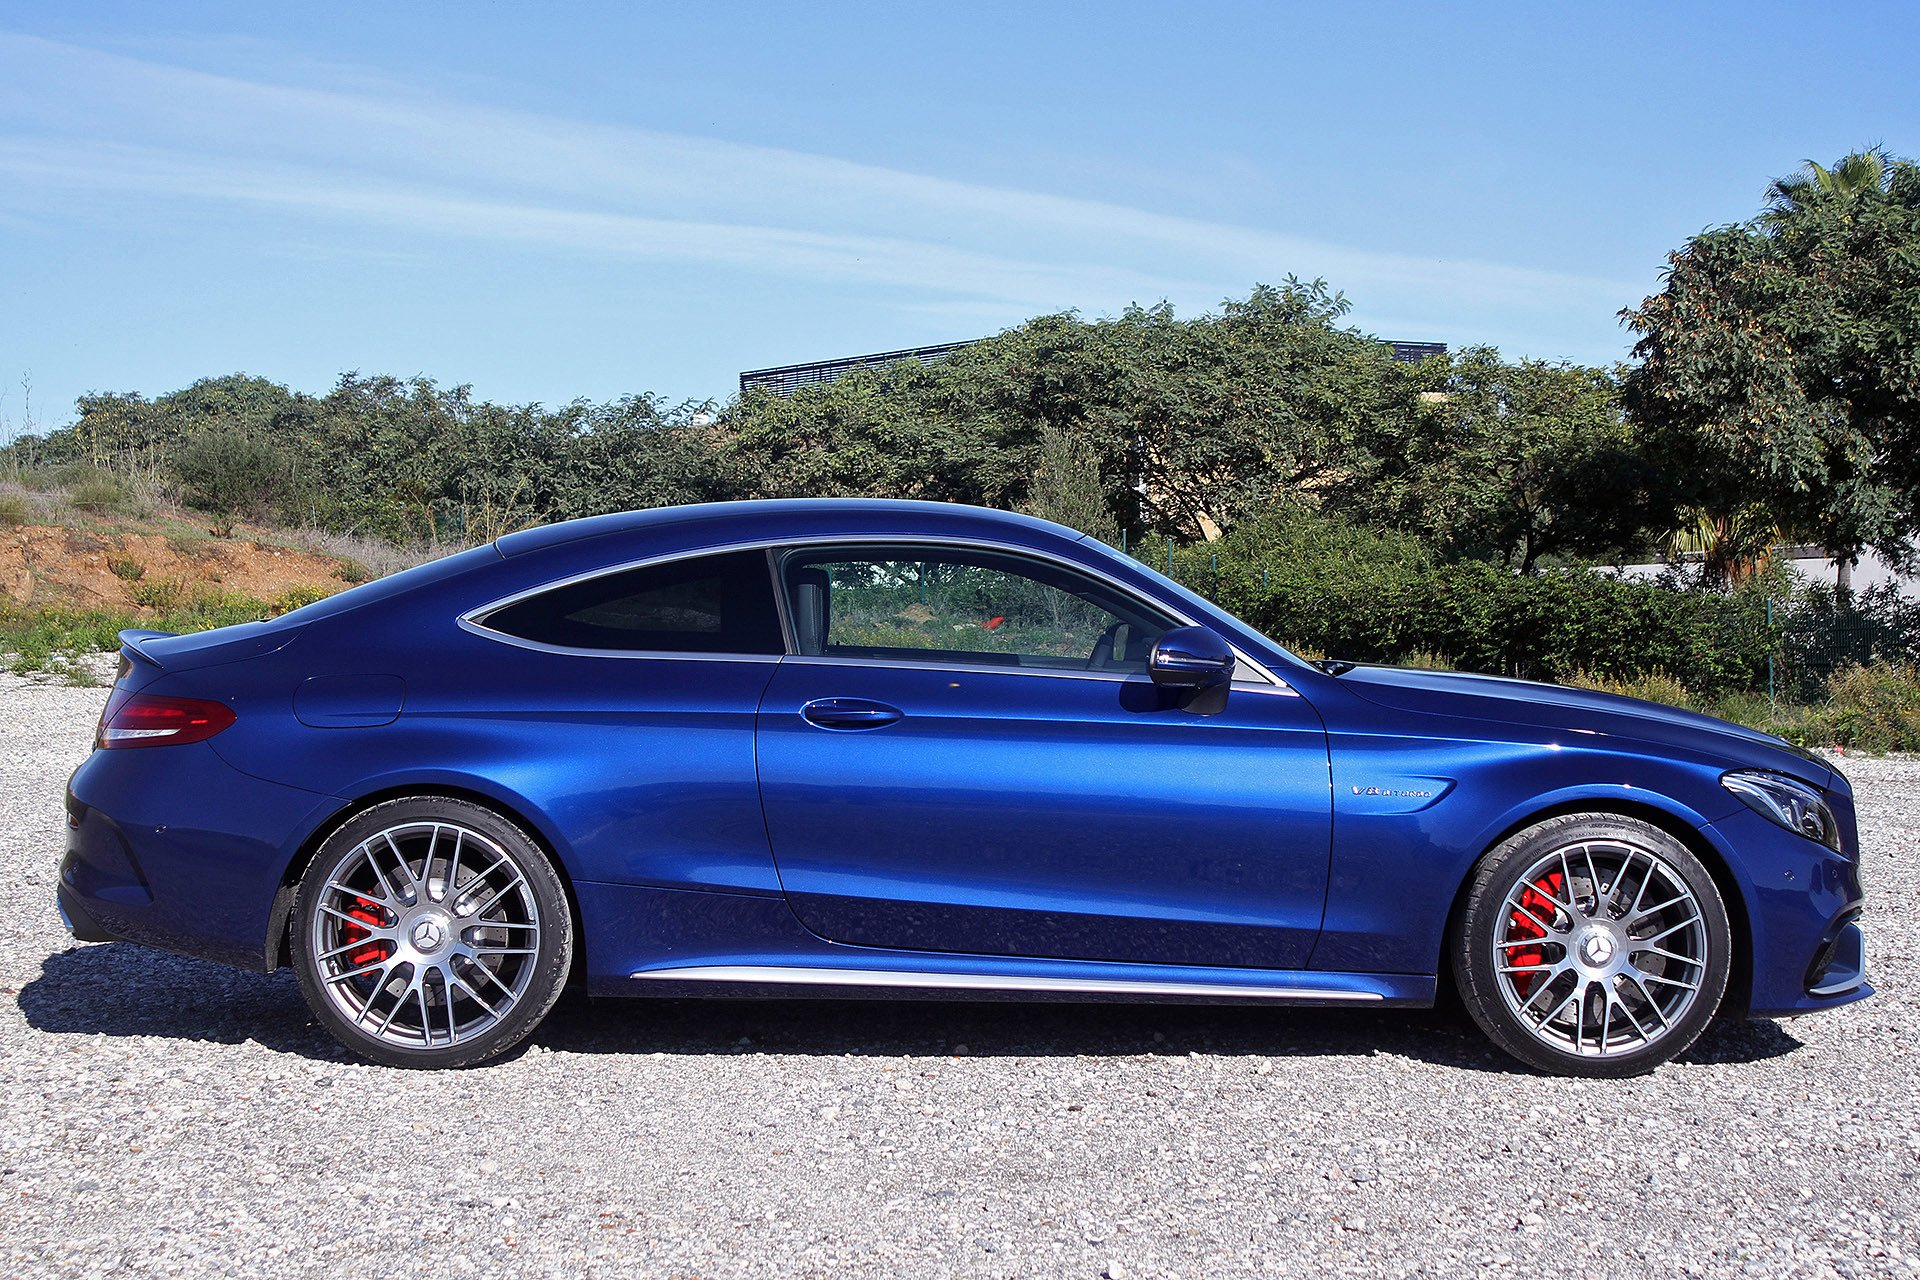 2016 Mercedes Amg C63 S Coupe Blue 2015 Wallpaper 1920x1280 834389 Wallpaperup